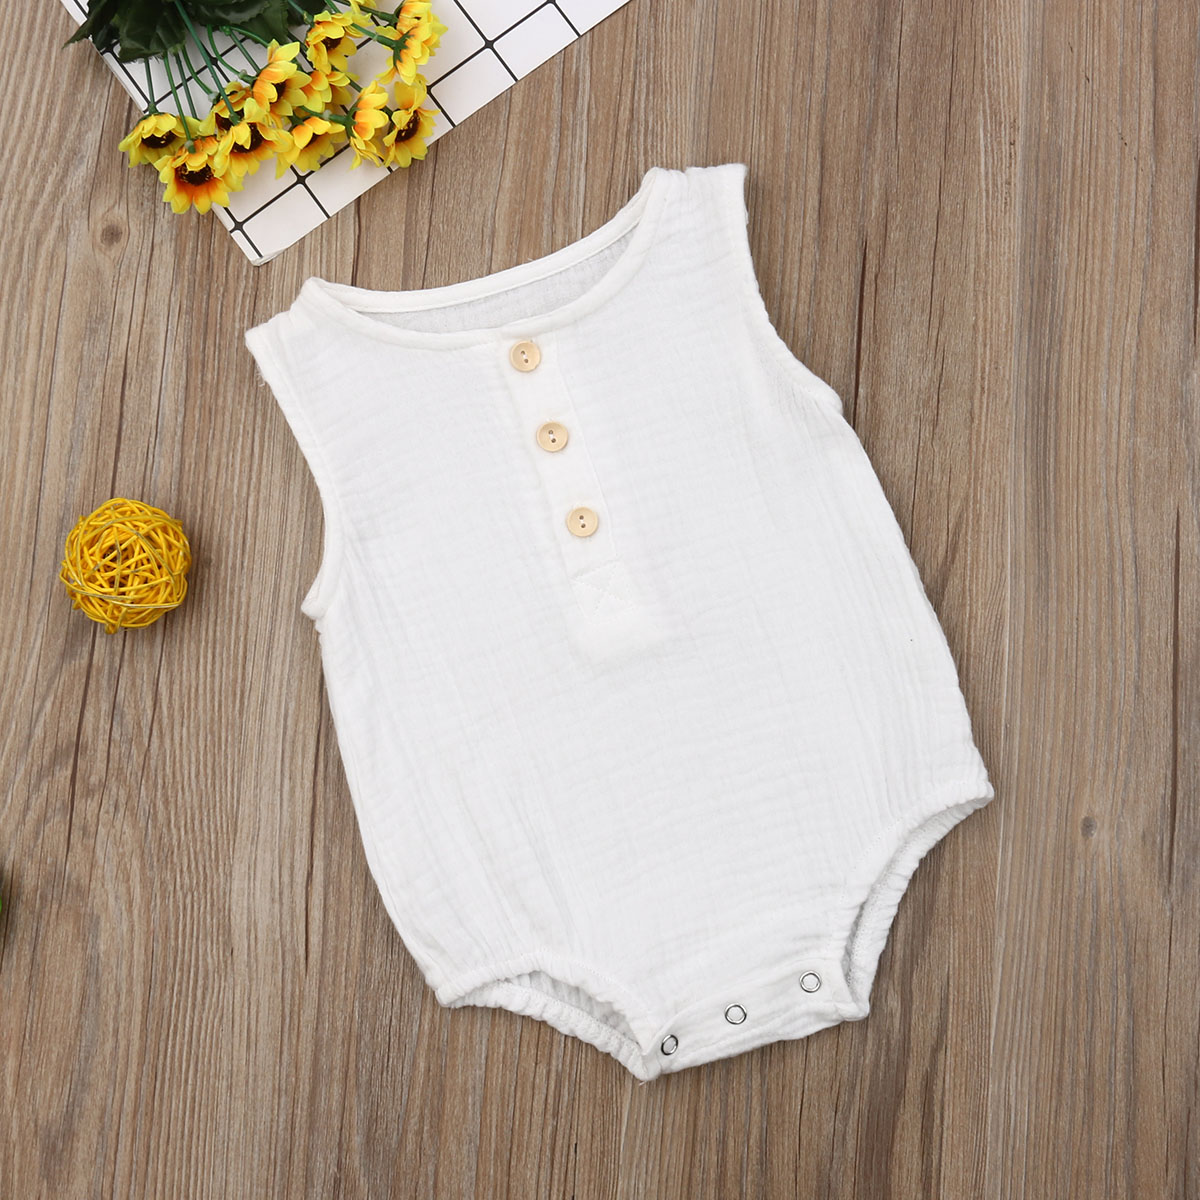 <font><b>Baby</b></font> Boys <font><b>Romper</b></font> Summer Infant <font><b>Unisex</b></font> Newborn Button Sleeveless Girls Solid One-pieces Jumpsuit <font><b>Baby</b></font> Cotton Linen Clothes Outfit image